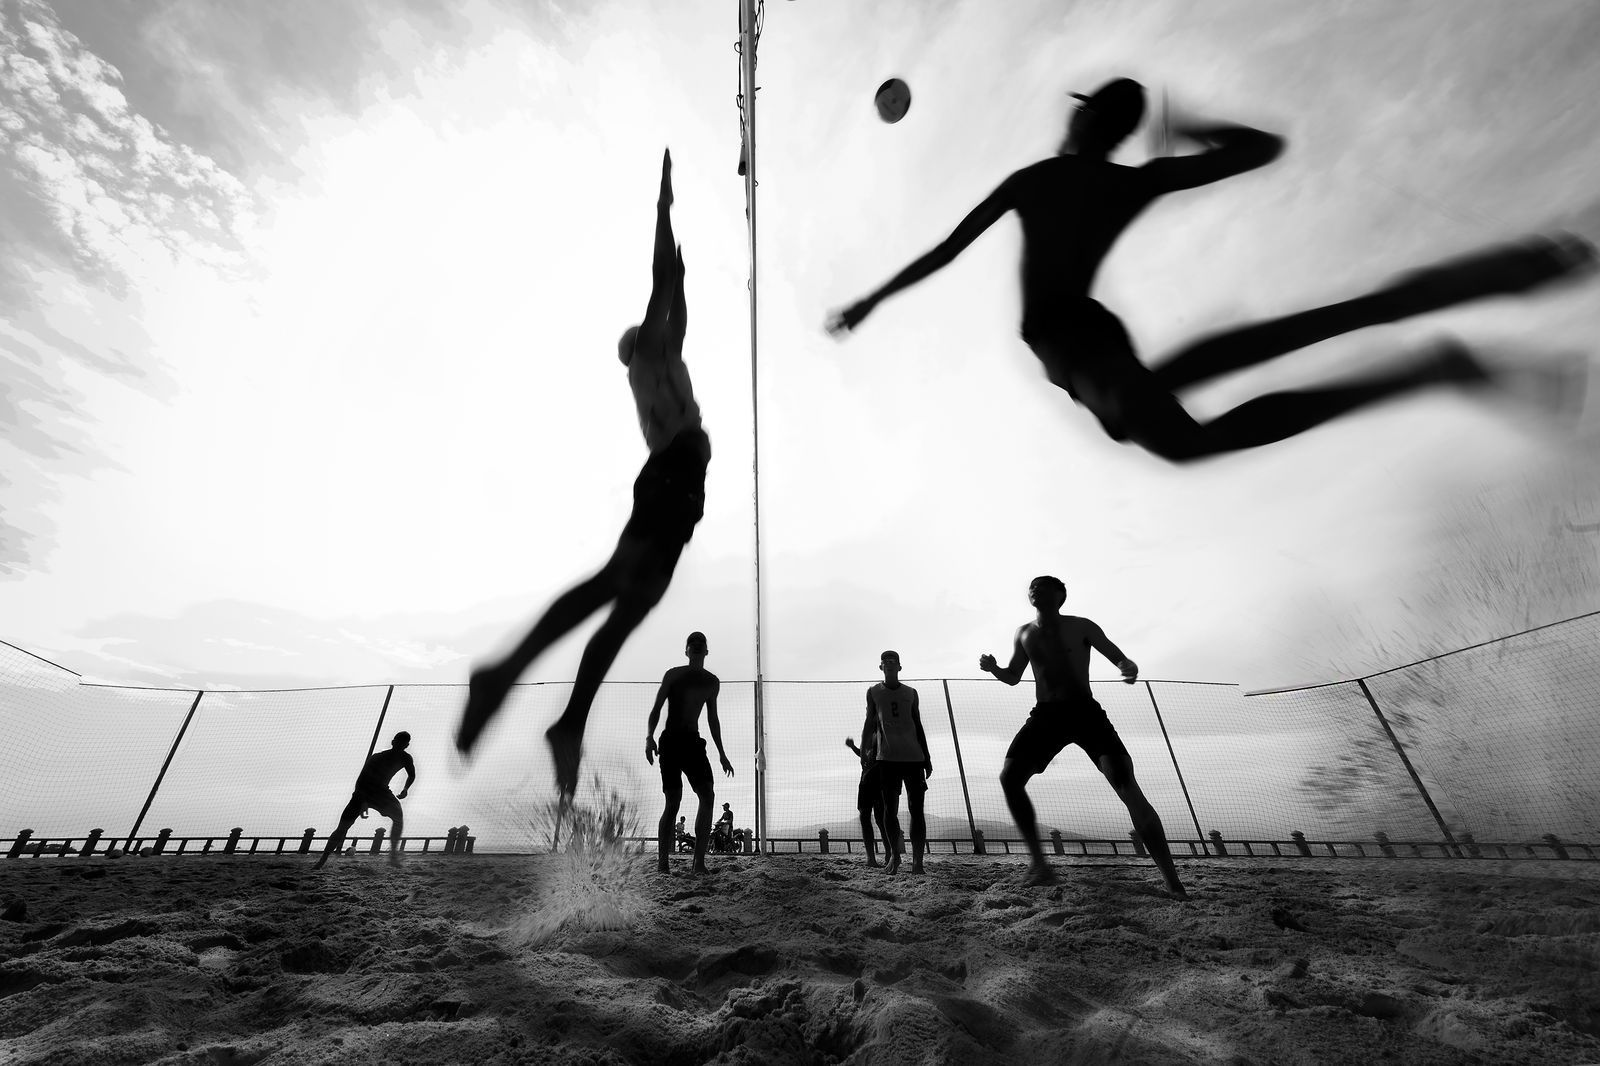 Vietnam Volleyball Image National Geographic Your Shot Photo Of The Day Beach Photos Photo Volleyball Photography